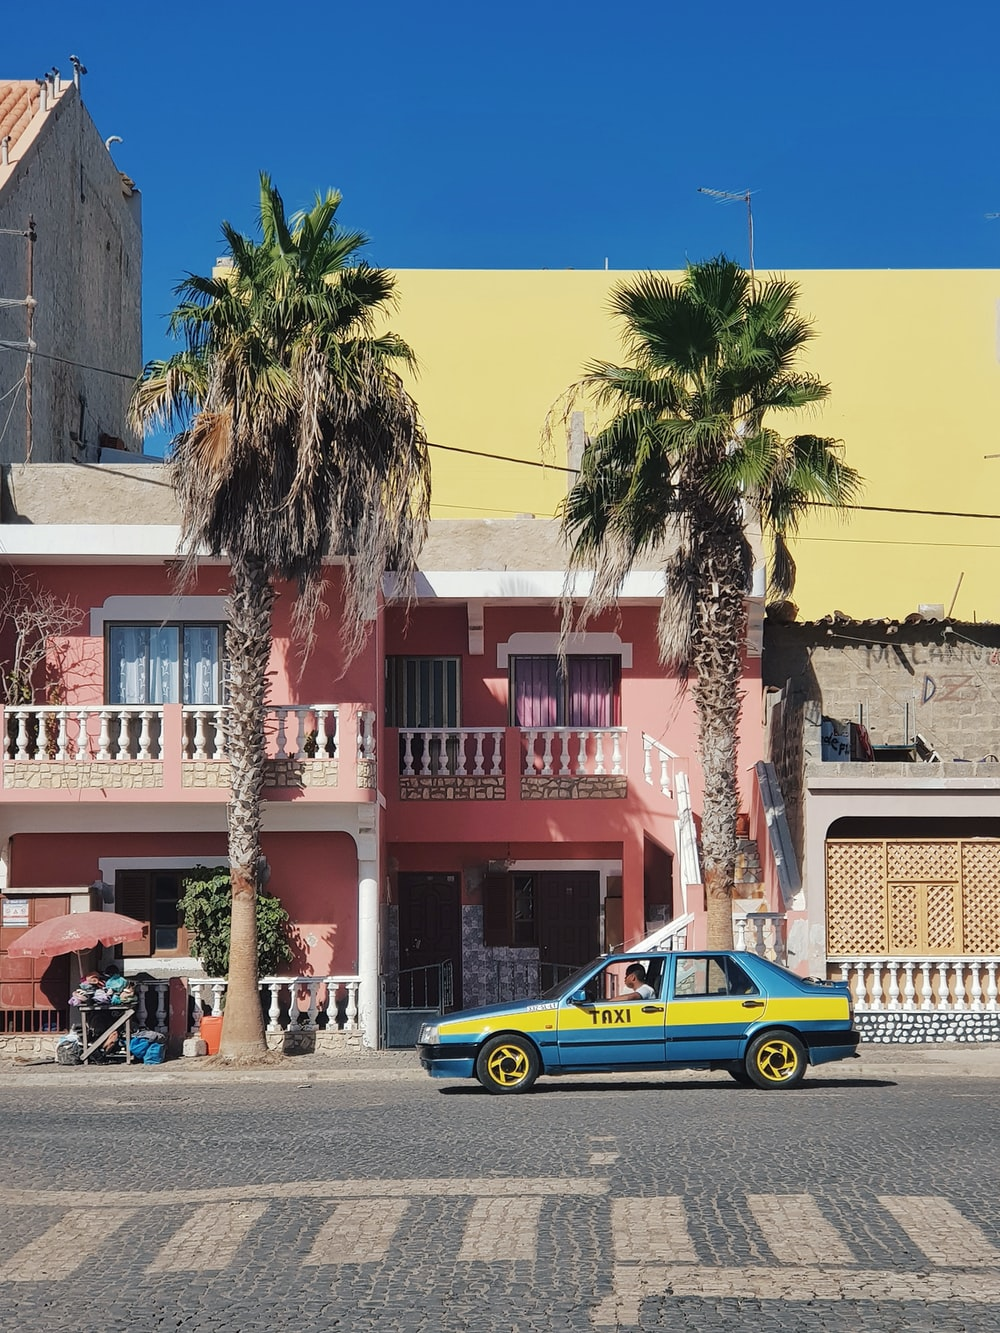 blue and yellow taxi parked near palm tree